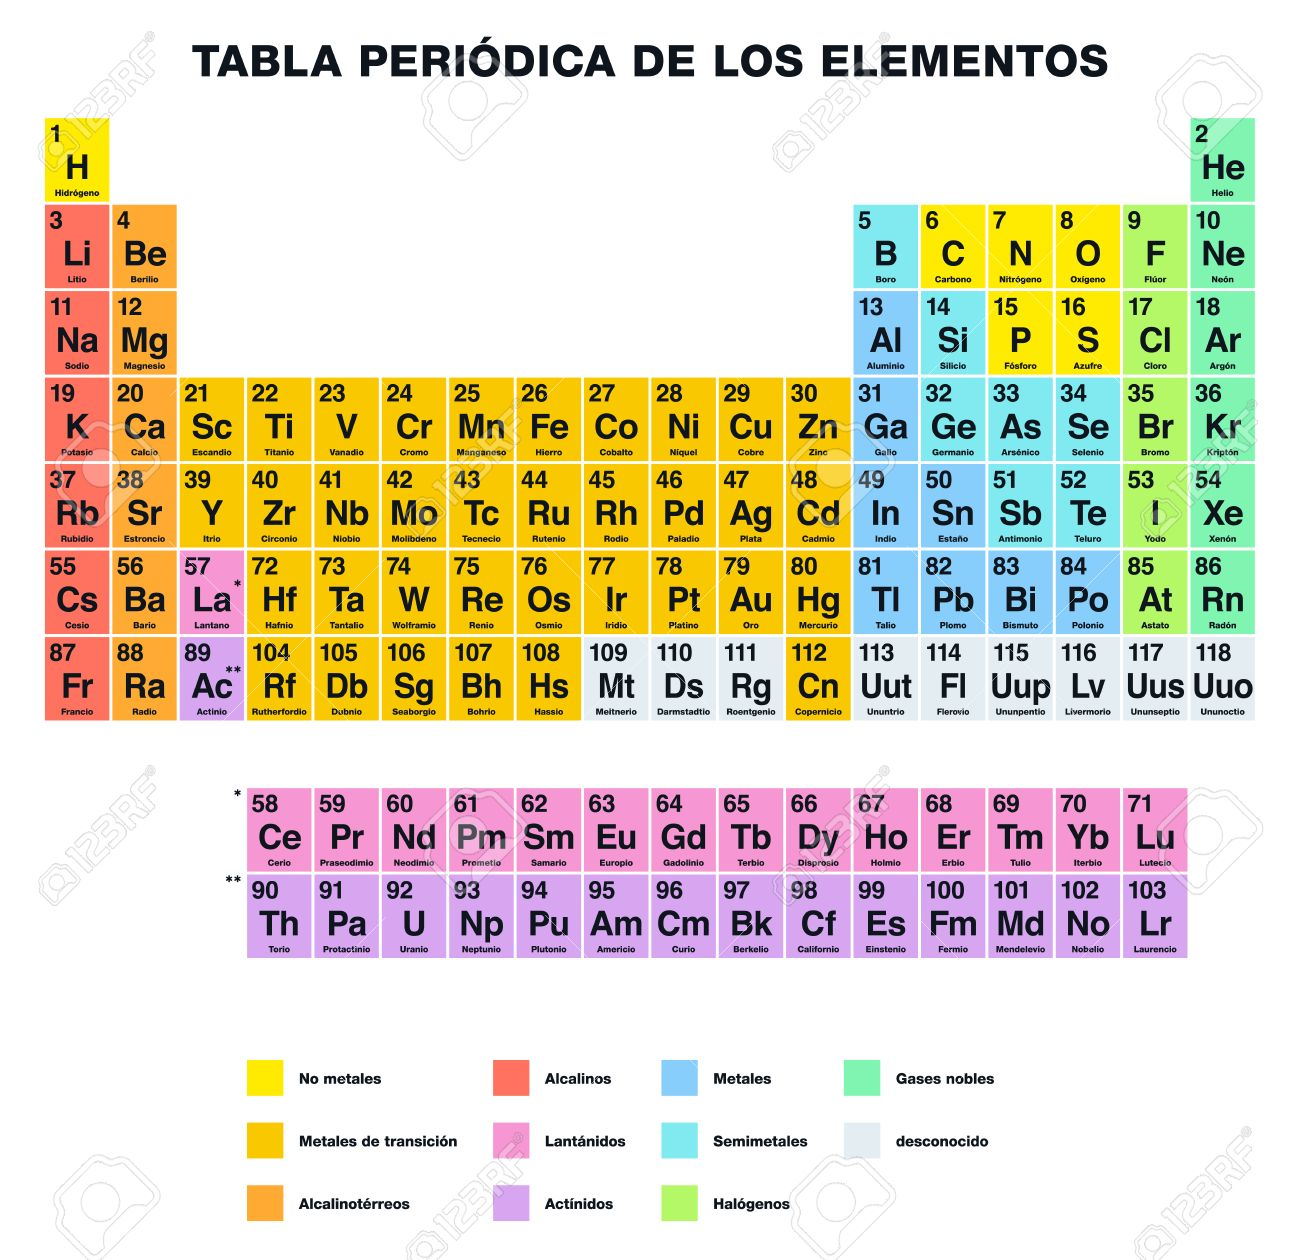 Pb in the periodic table gallery periodic table images periodic table of the elements spanish labeling tabular periodic table of the elements spanish labeling tabular gamestrikefo Images